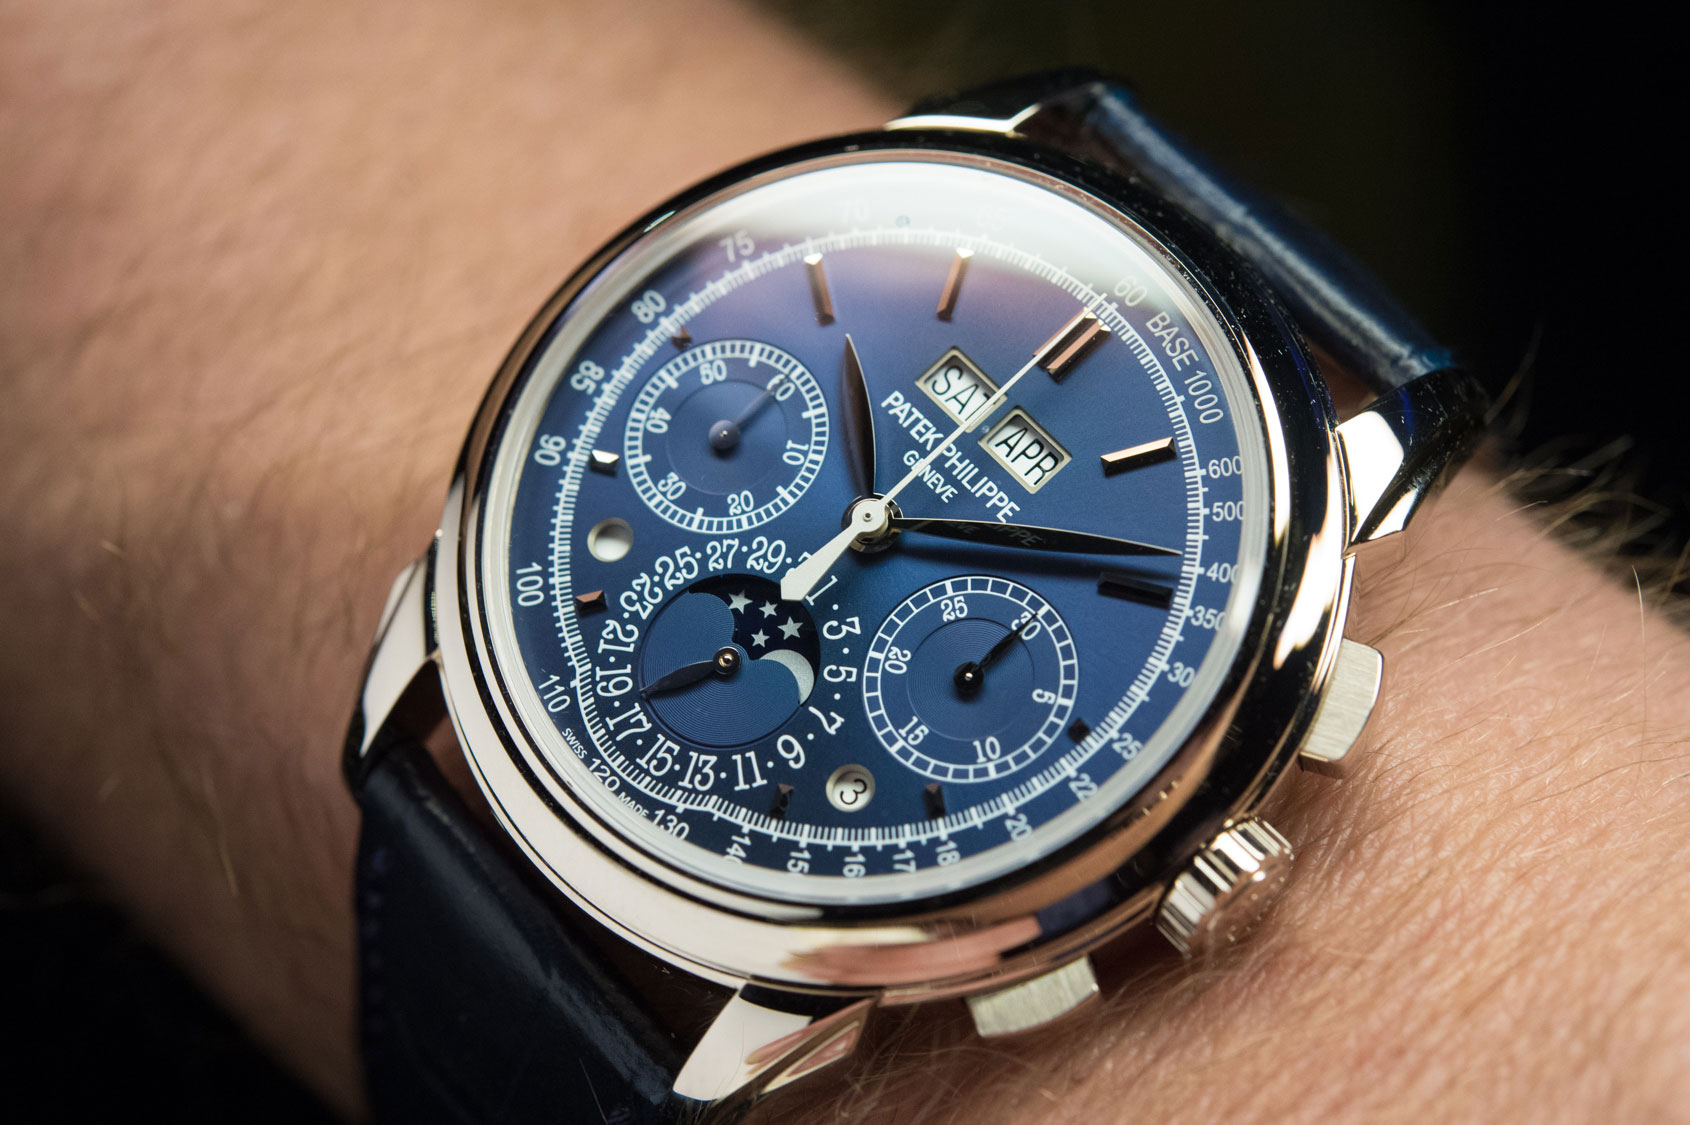 P Philippe Watch Swiss Franc Rises Patek Philippe Prices In Australia Go Down